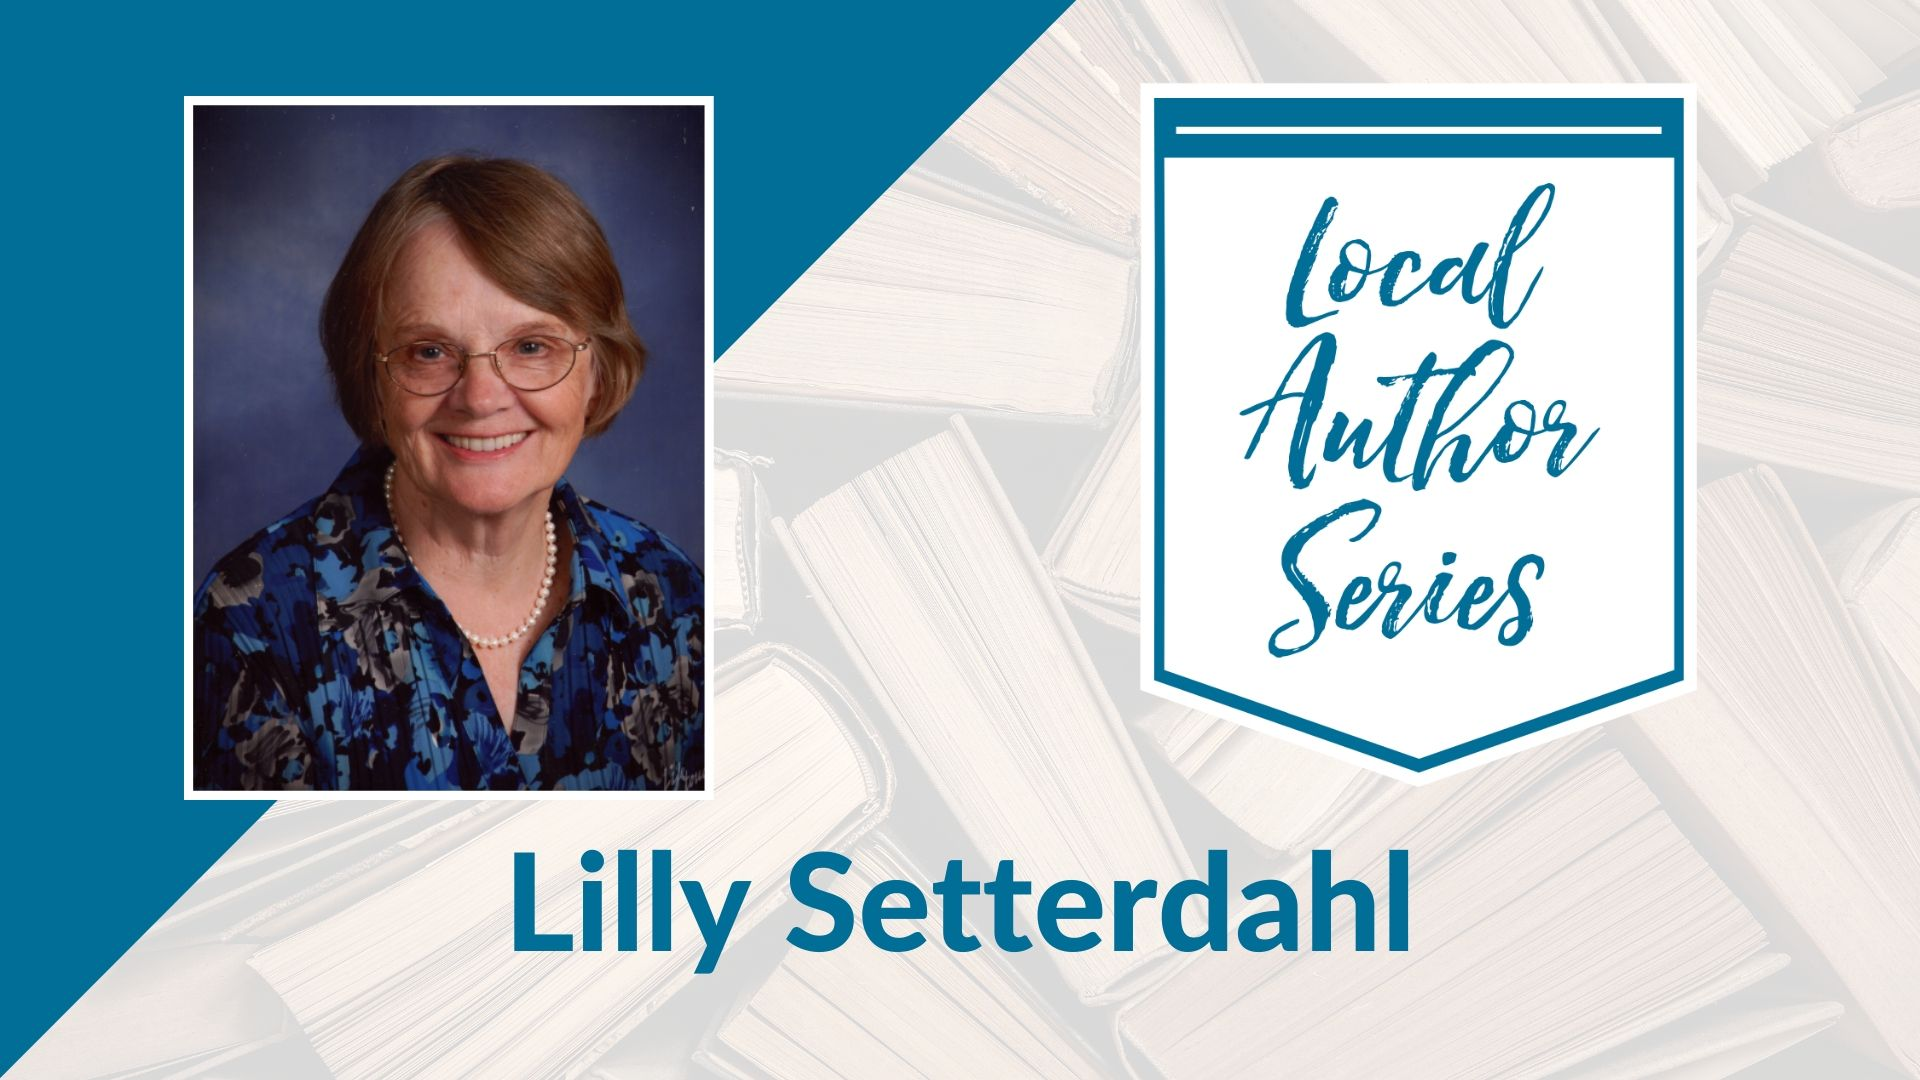 Local Author Series: Lilly Setterdahl